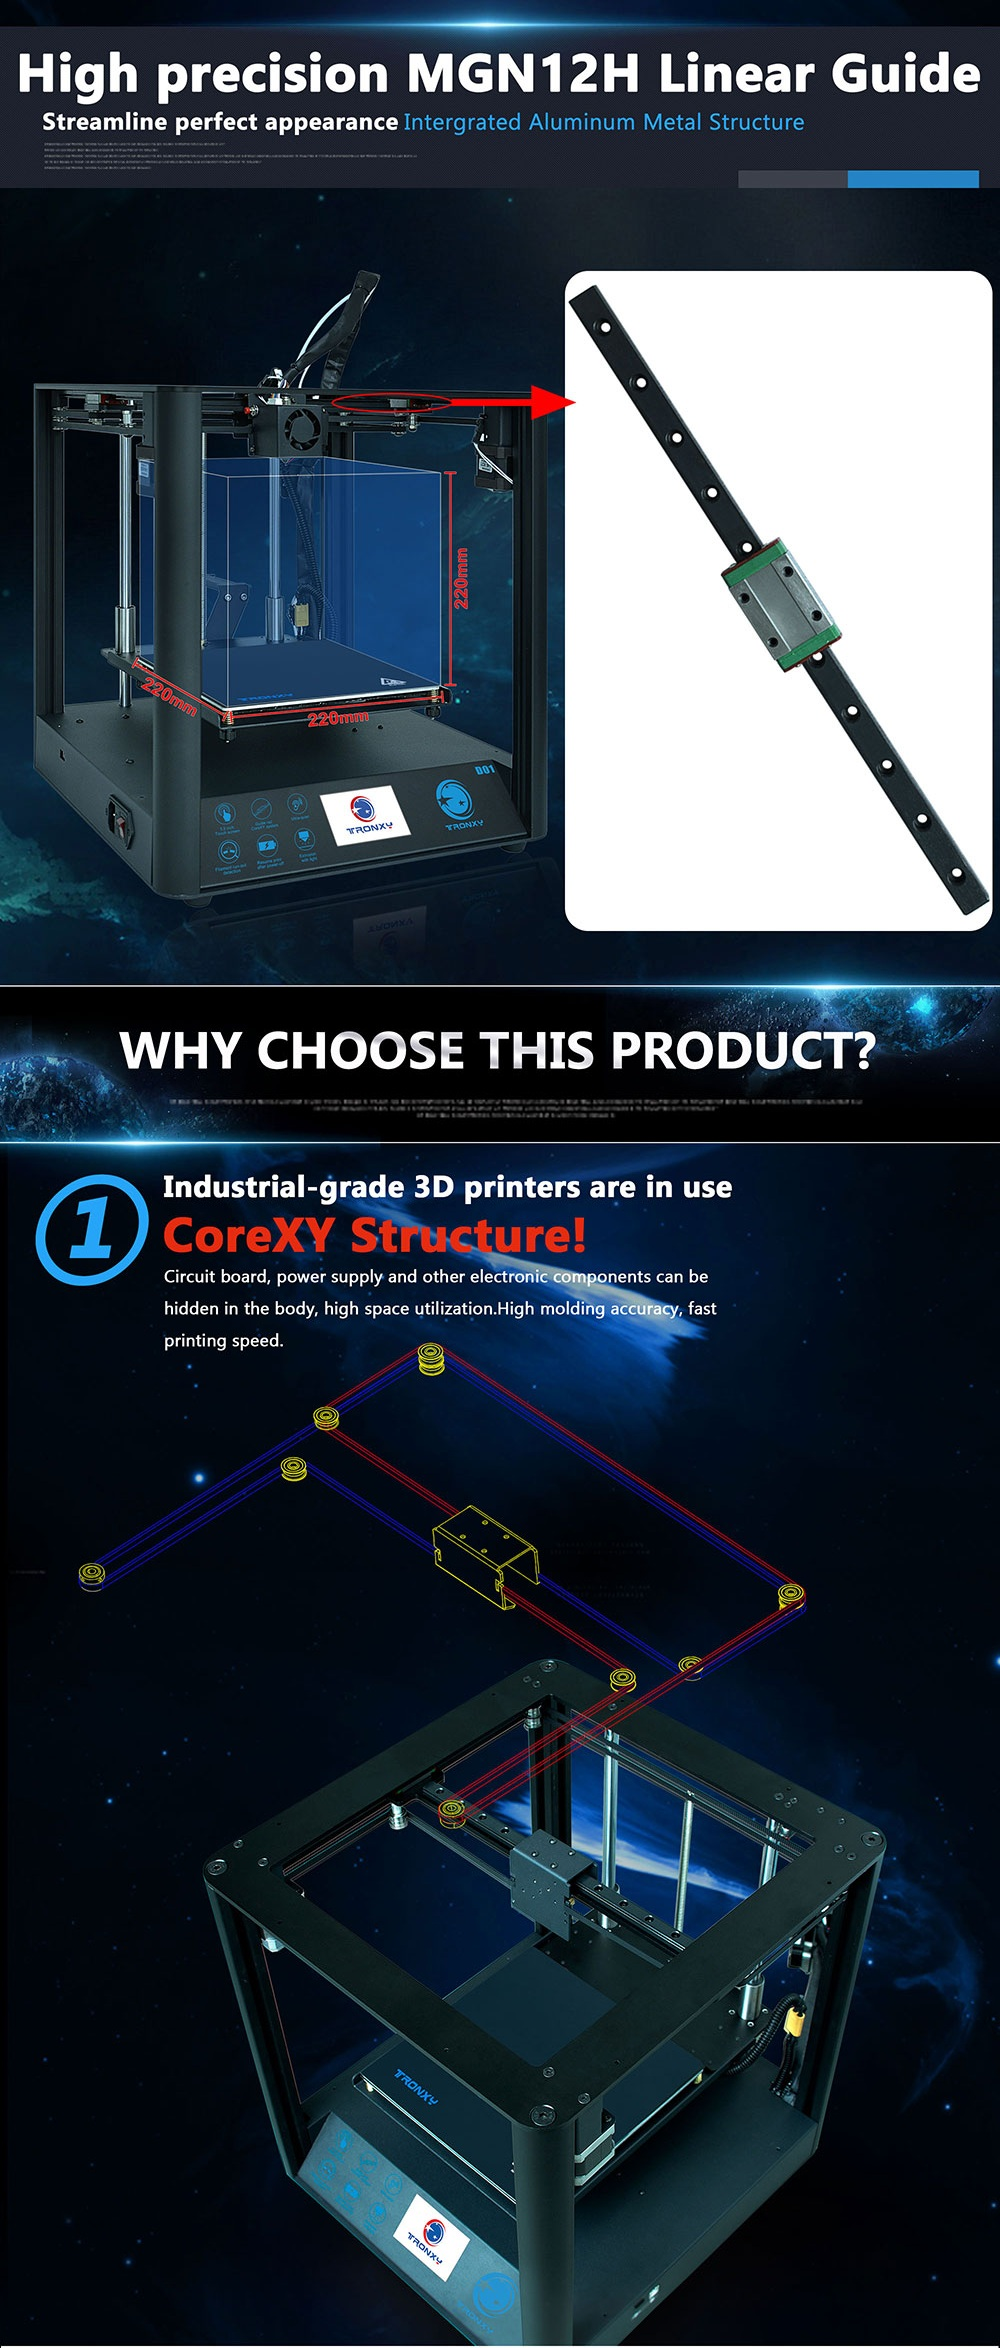 TRONXY D01 Fast Assembly 3D Printer Ultra-Quiet Mode Titan Extruder Acrylic Mask Optional Power Resume Filament Detection